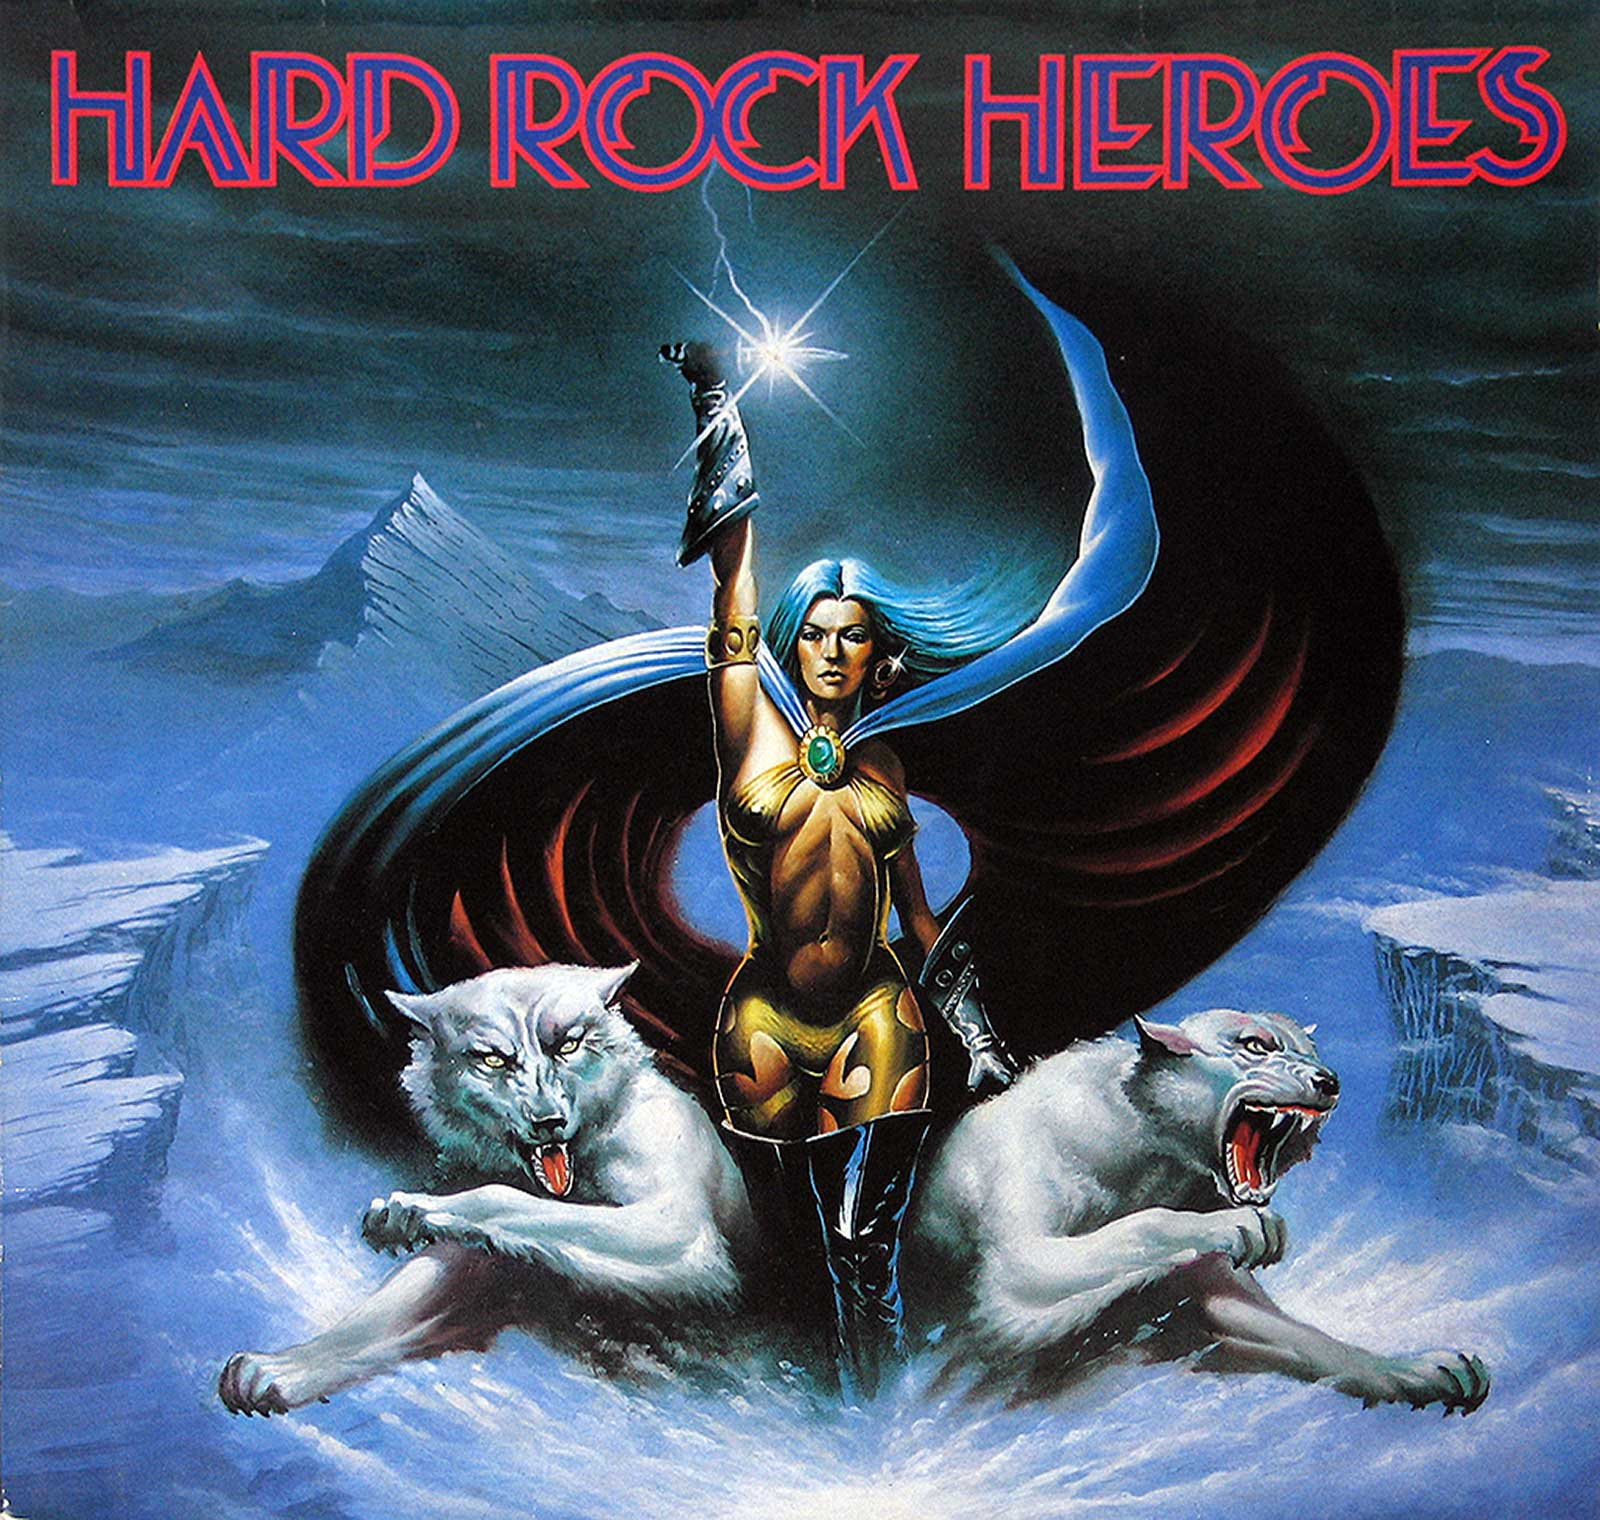 large photo of the album front cover of: Hard Rock Heroes